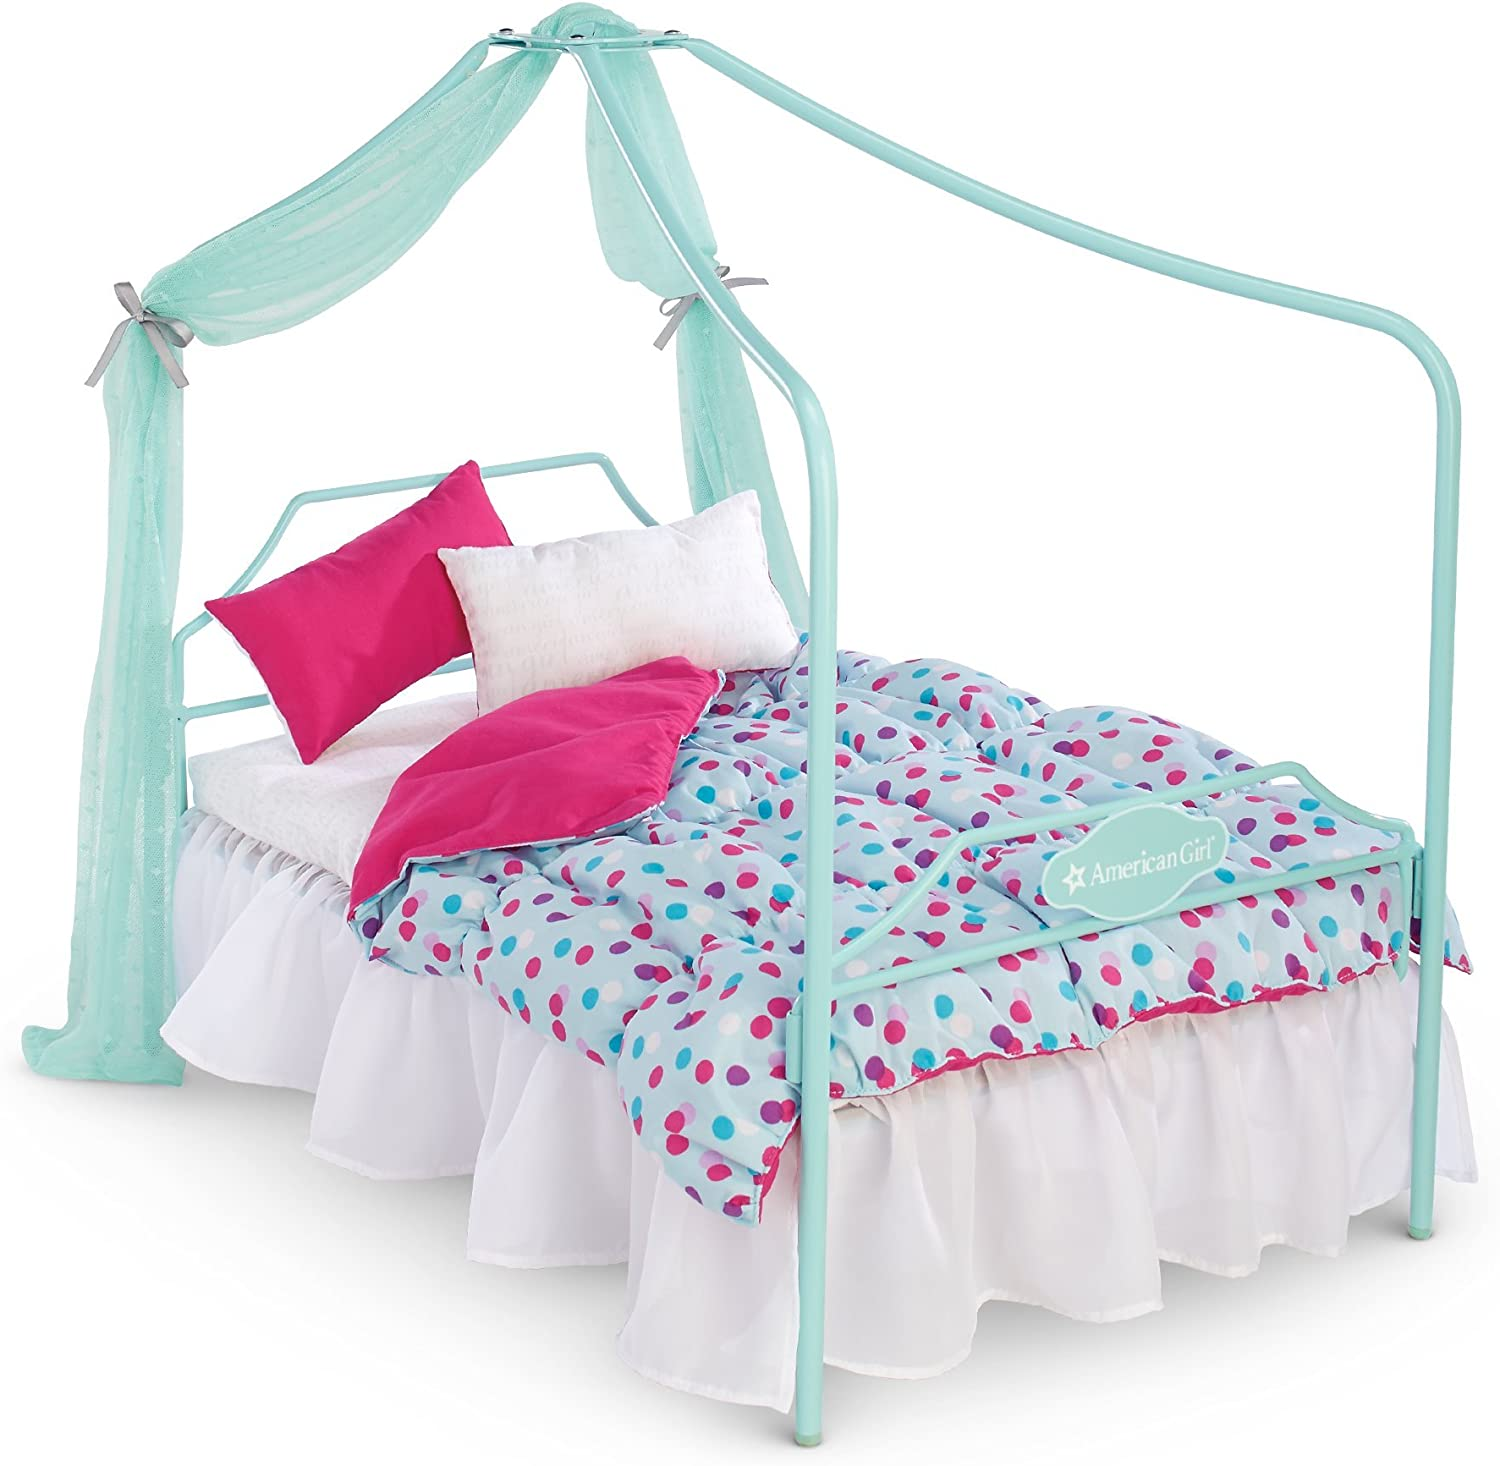 American Girl Truly Me Canopy Bed for 18 Dolls